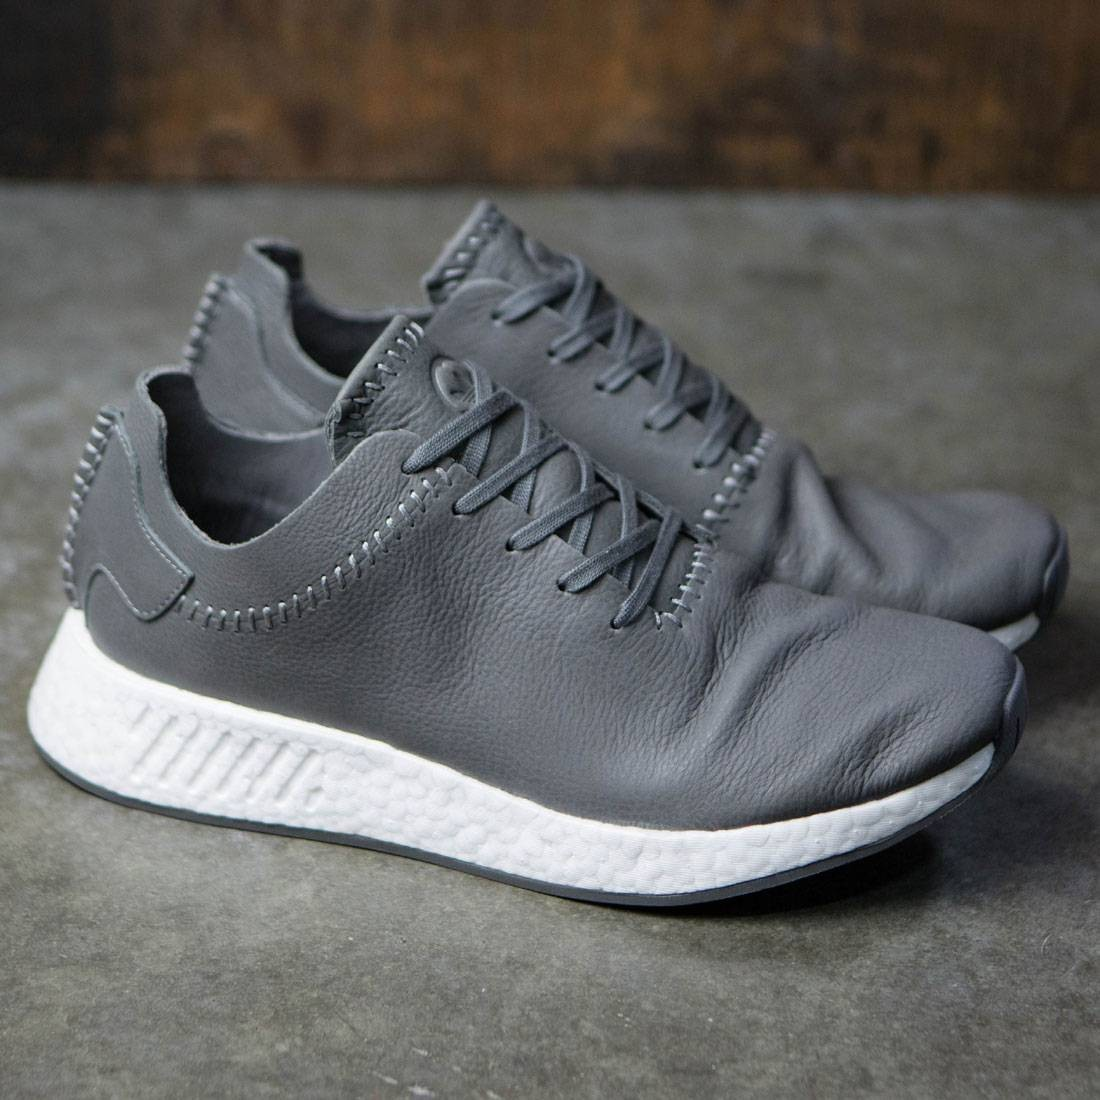 1d1ee4cde Adidas x Wings + Horns Men NMD R2 Leather (gray   ash   off white)